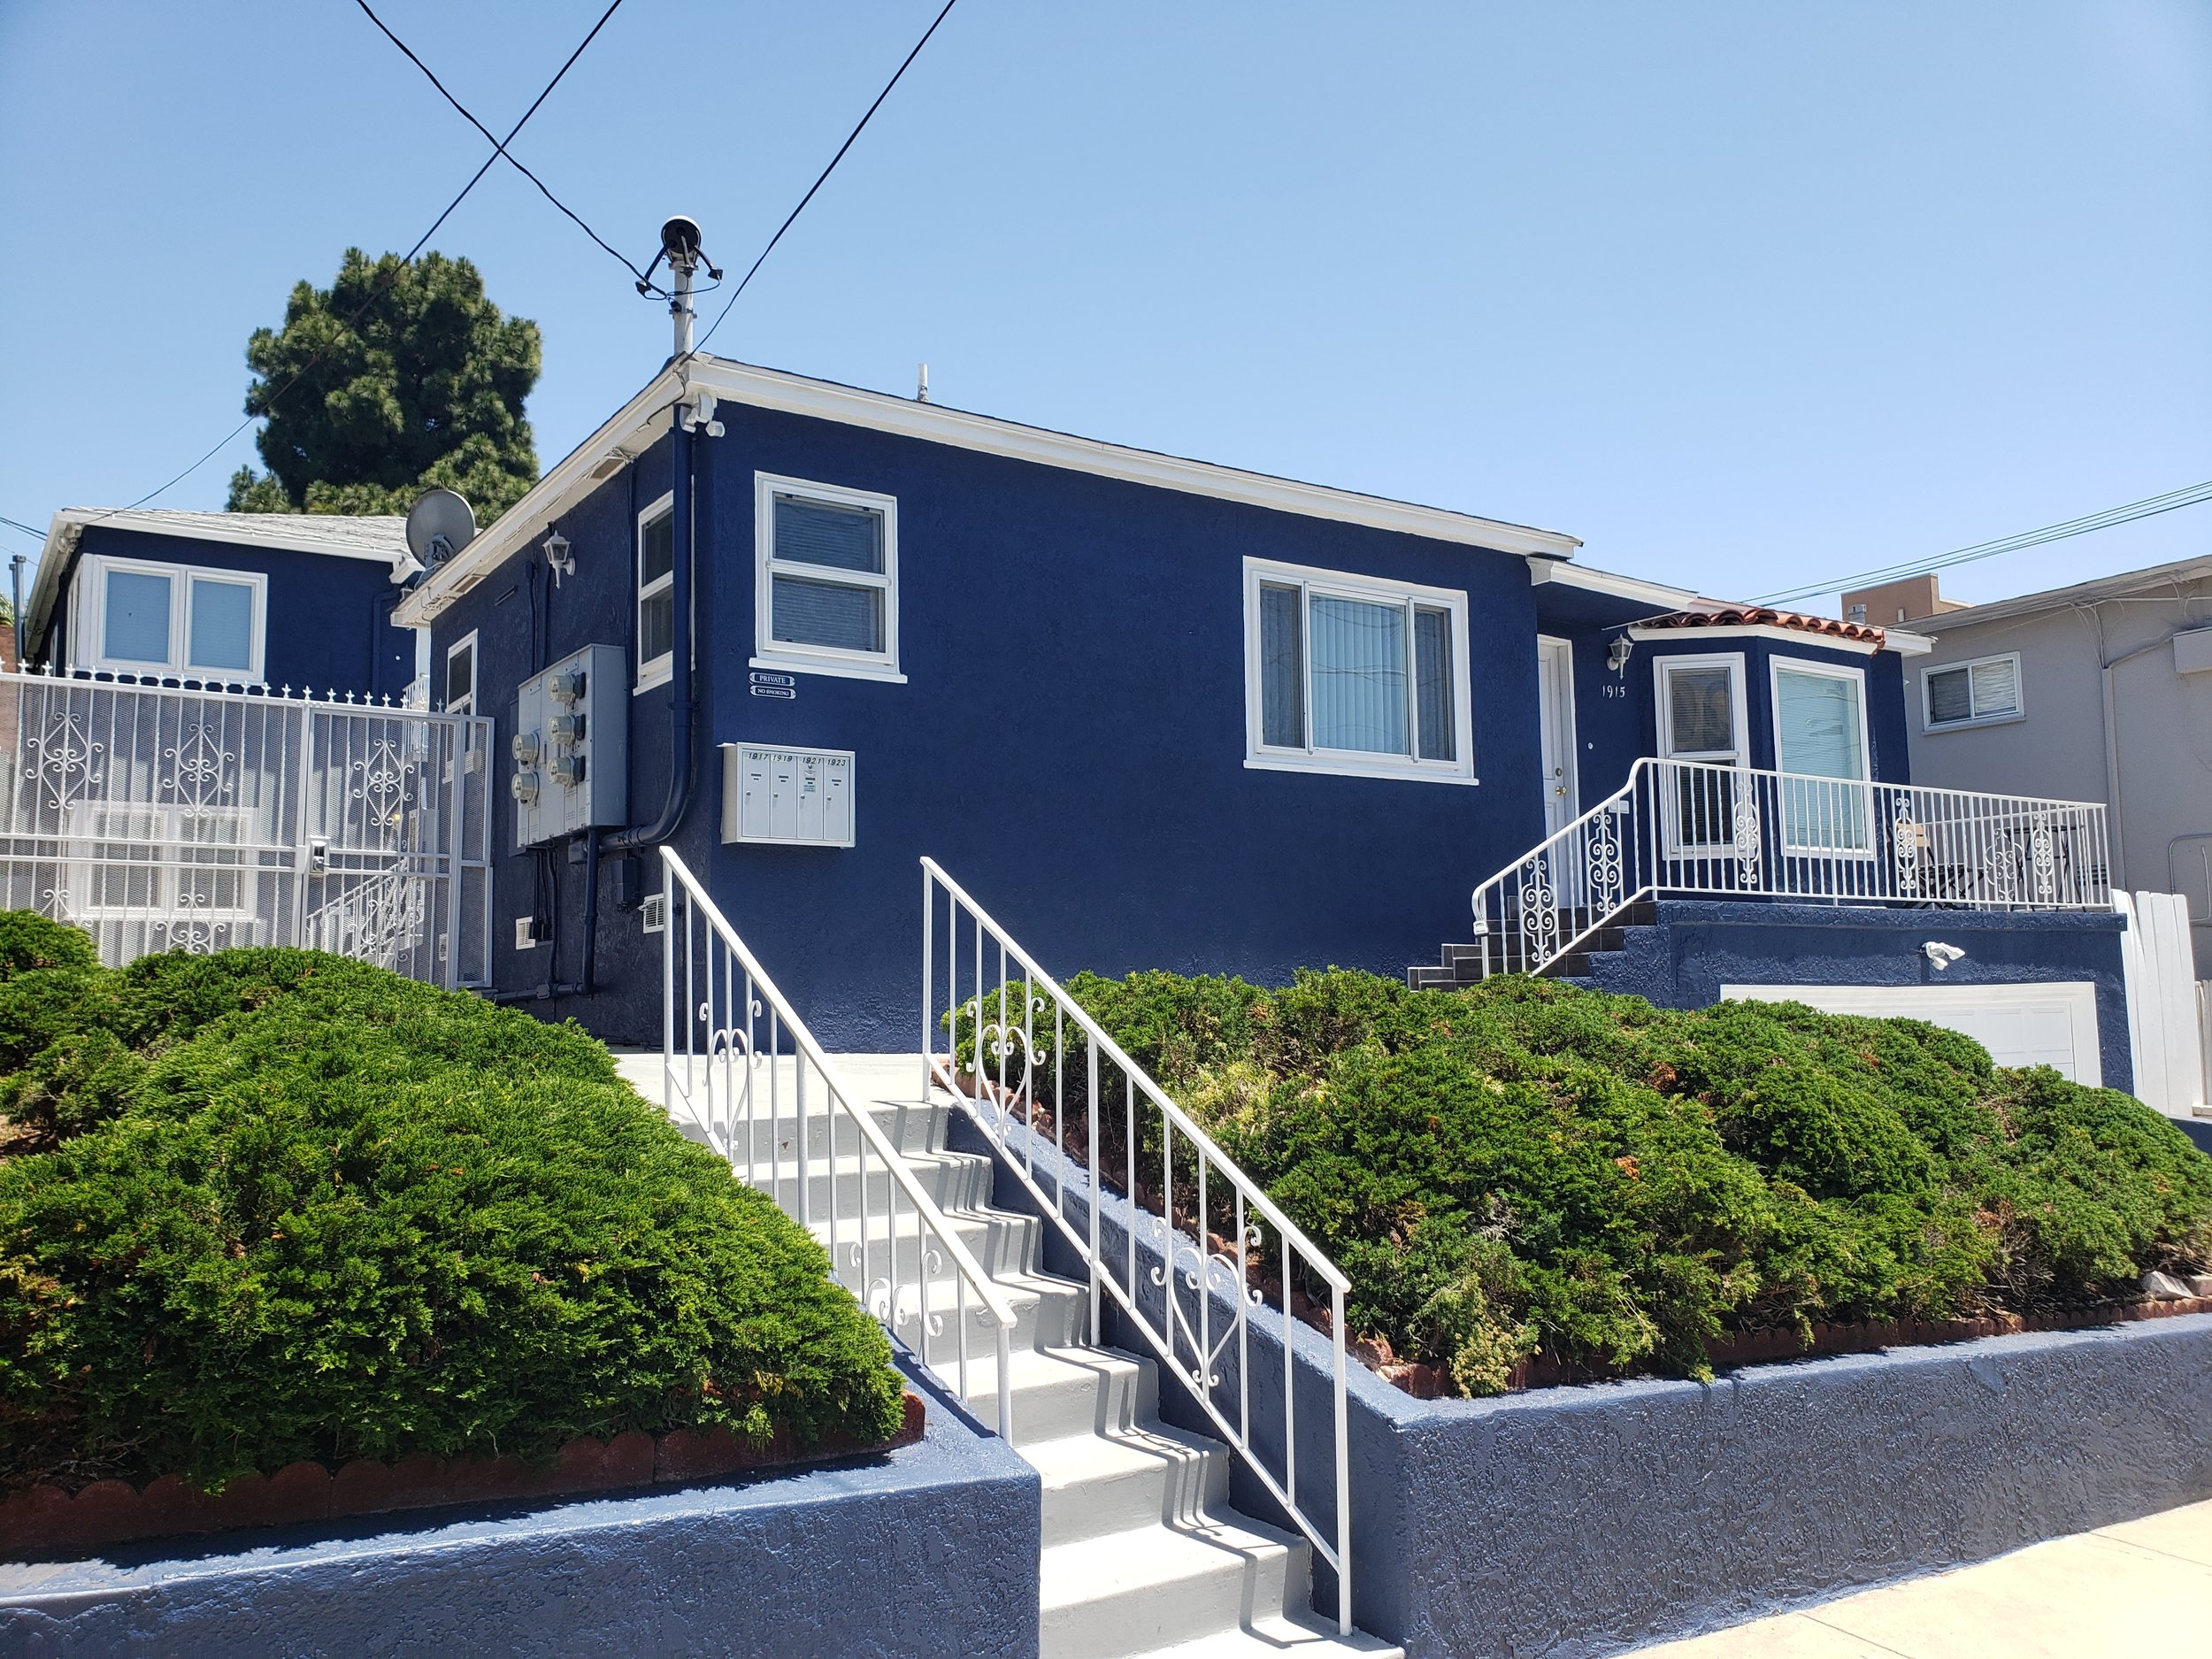 """1915-1923 2nd Ave, San Diego, CA 92101Offered at $ 1,949,000 - This property consist of consists of 2 bed 2 bath Single family which has a 2 car garage and separate four plex . Located in the Bankers Hill market tenants enjoy being able to walk to Little Italy and Balboa park. Couple more minutes and the tenants can be in downtown or Hillcrest. The main house has a basement that is currently configured to be a Airbnb (Boot Studio). The property is close to the flight path, however it has been updated by the """"Quieter Home program"""" with triple pane windows, new doors, AC, insulation etc. Each unit including the boot studio has their own washer and dryer. Rentable sqft is 3,336, units are bright and spacious.Offering MemorandumInvestment Summary"""